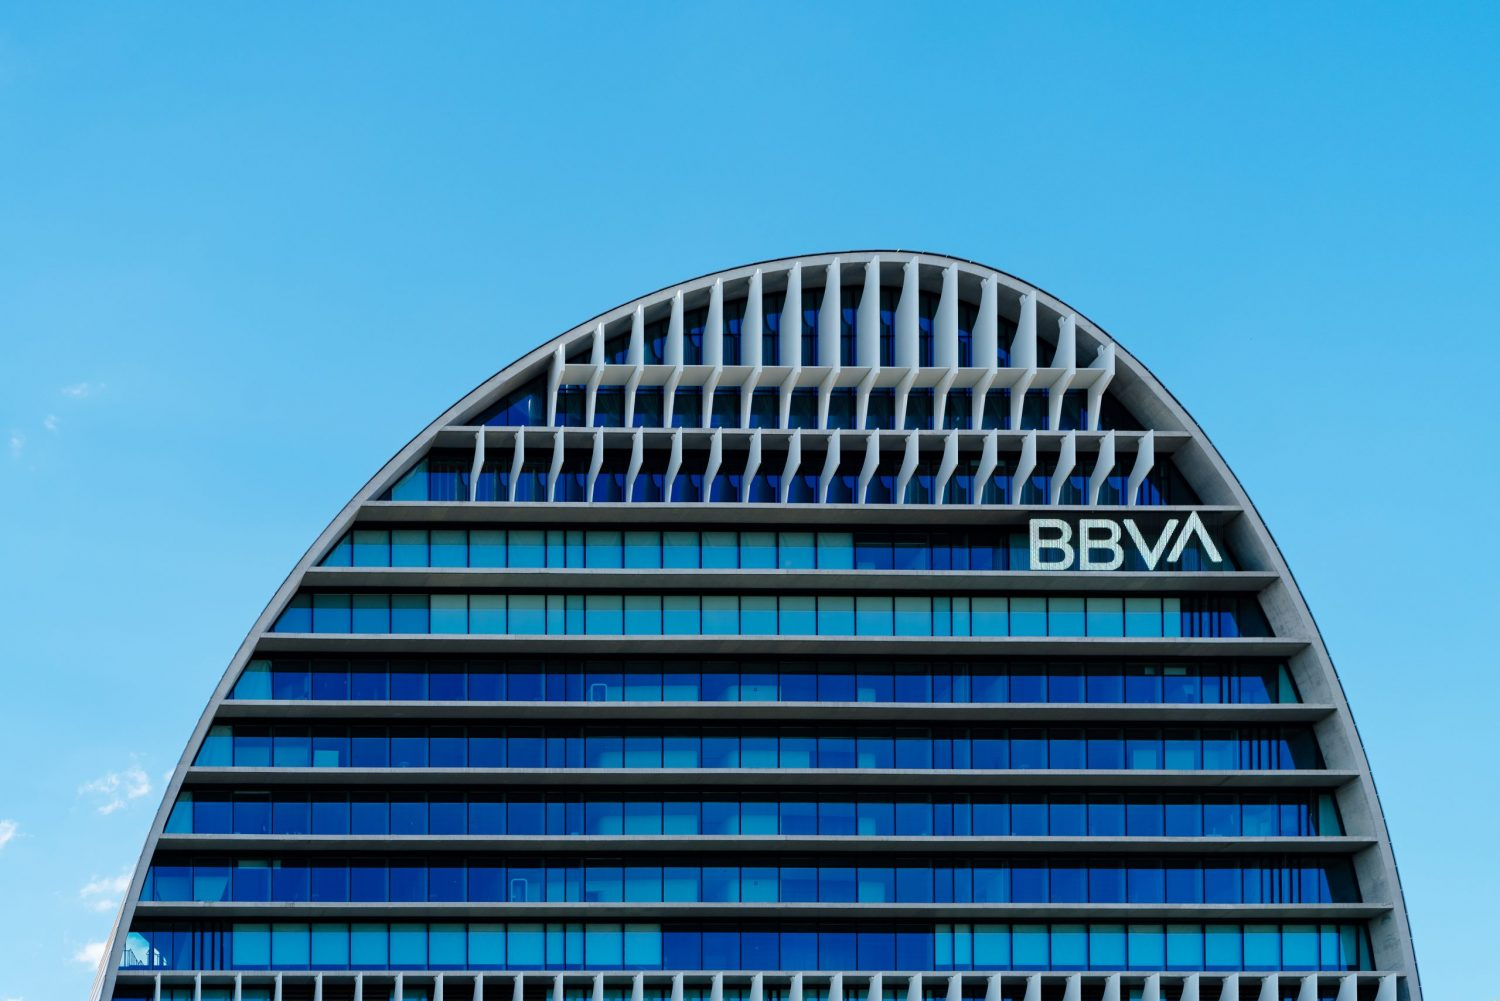 spanish-banking-giant-bbva-is-said-to-be-launching-crypto-trading-and-custody-services